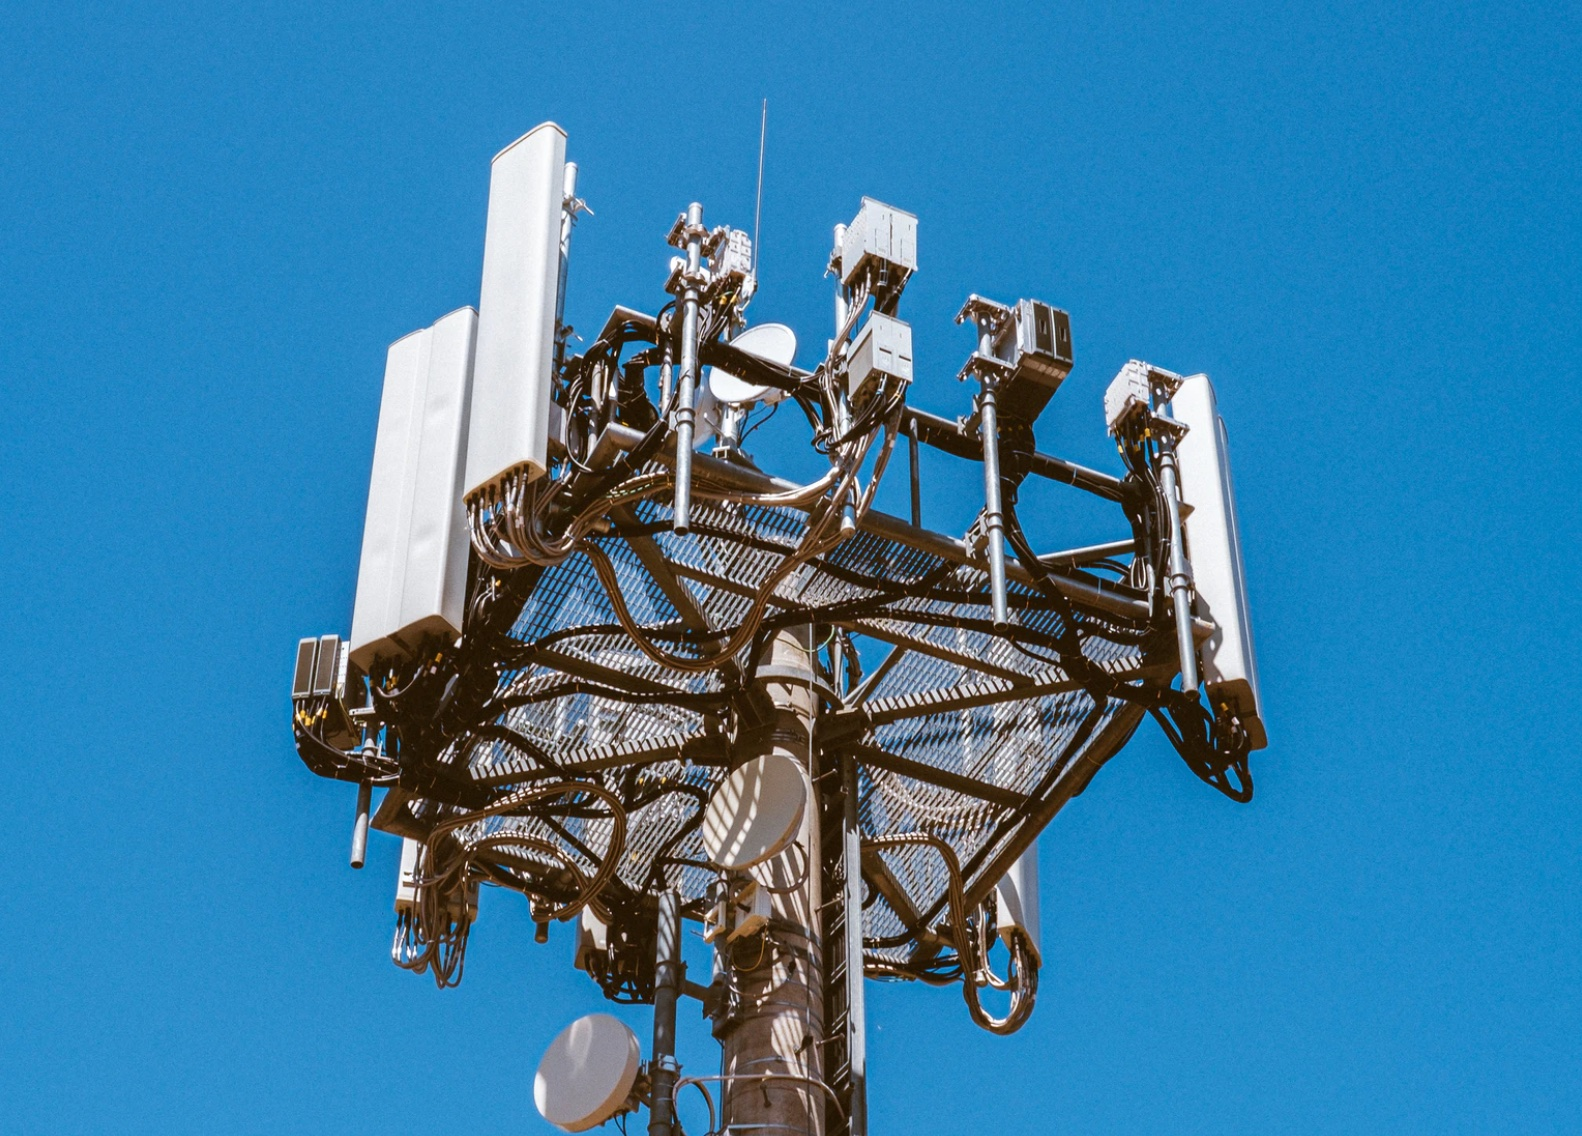 This city builds 5G so fast that it needs to hibernate base stations to save power-cnTechPost